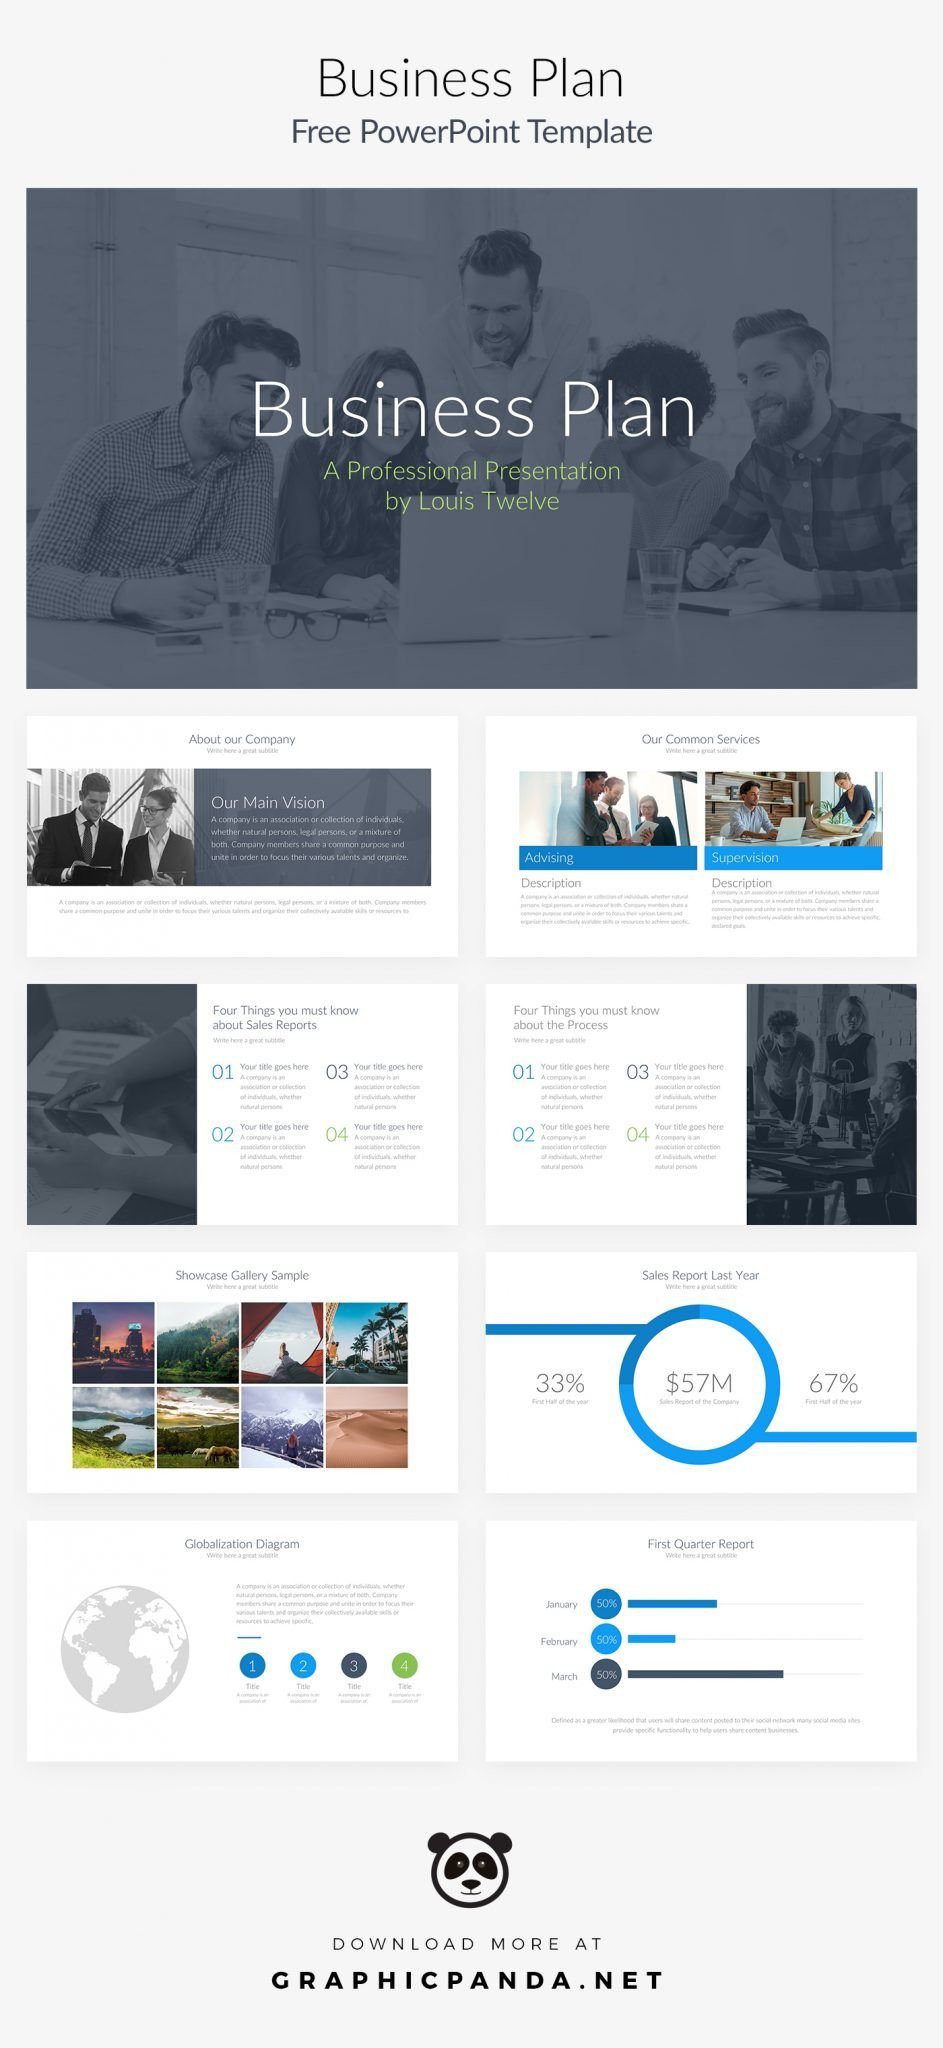 Business Plan Powerpoint Template 10 Free Slides For Business